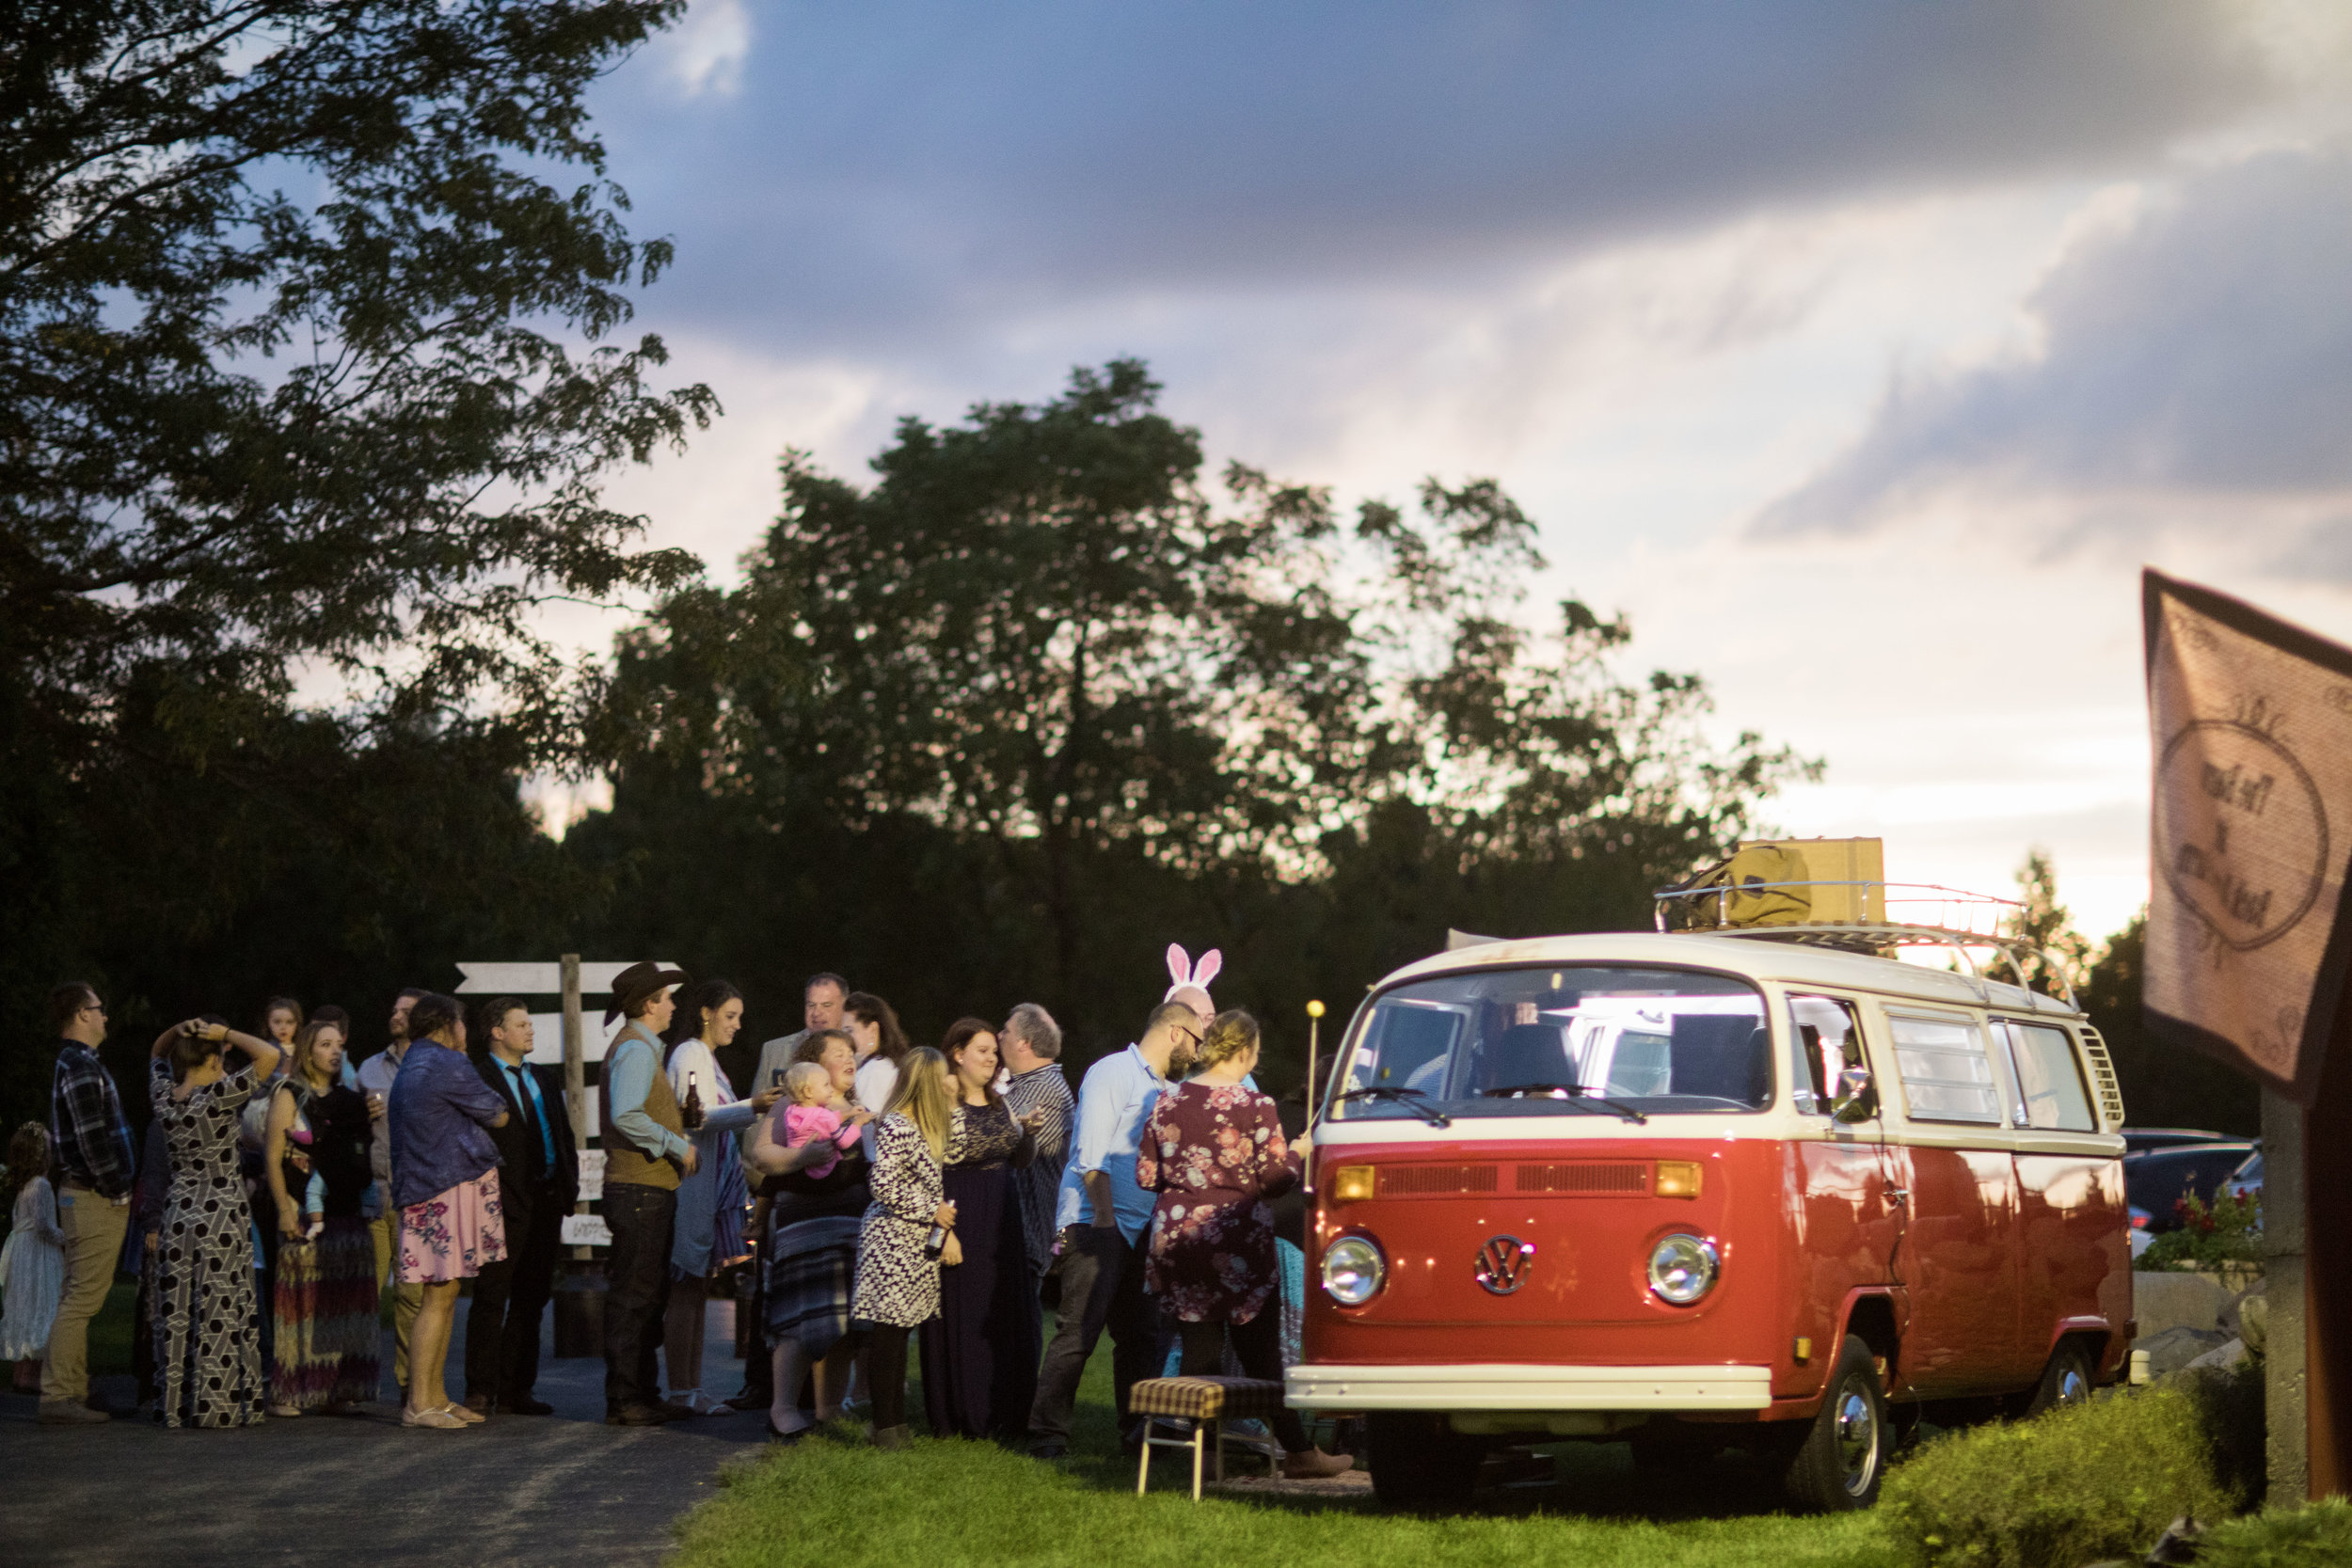 Photo Booth in Vintage Van - Big Foot Foto Company